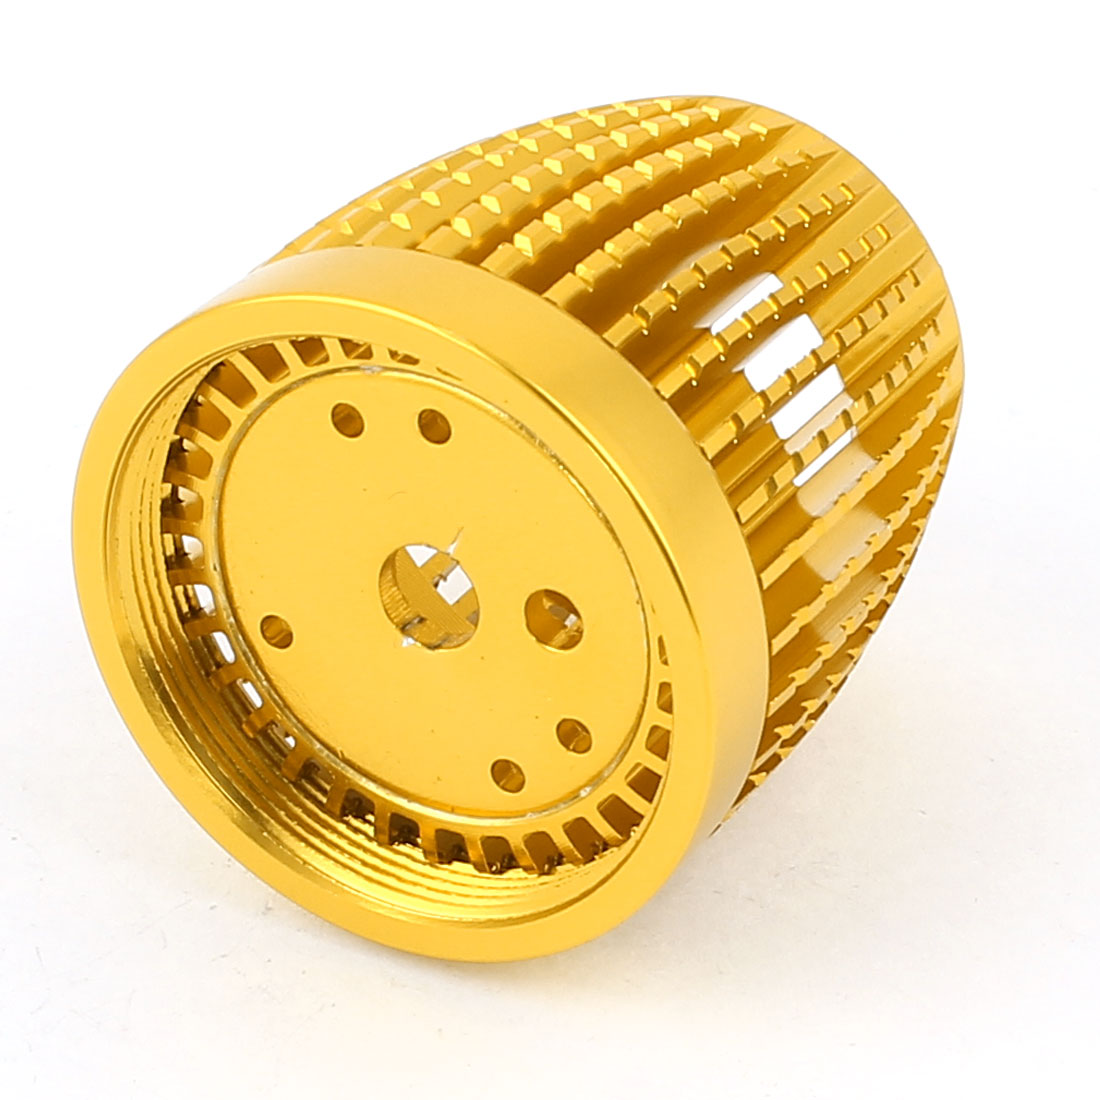 Gold Tone Aluminum Heatsink for LED Bulb Light Lamp Cooling